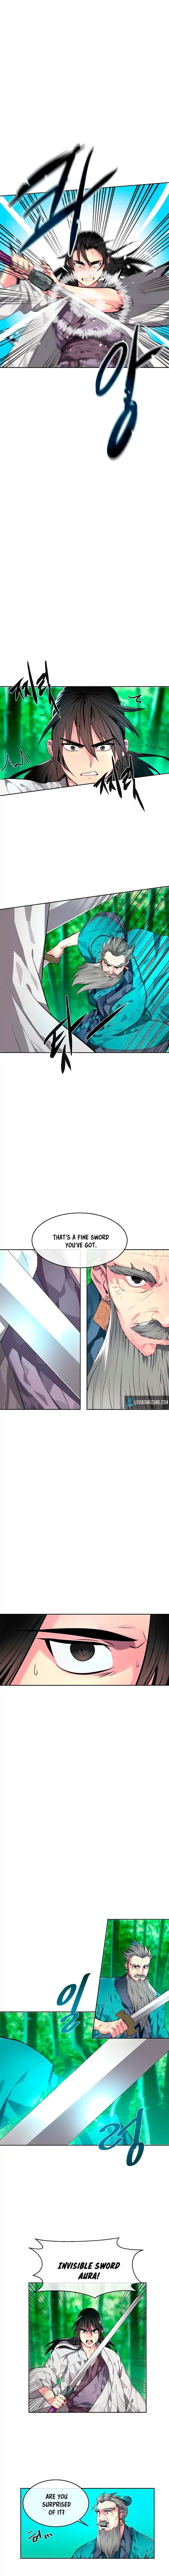 Volcanic Age - chapter 83 - #2